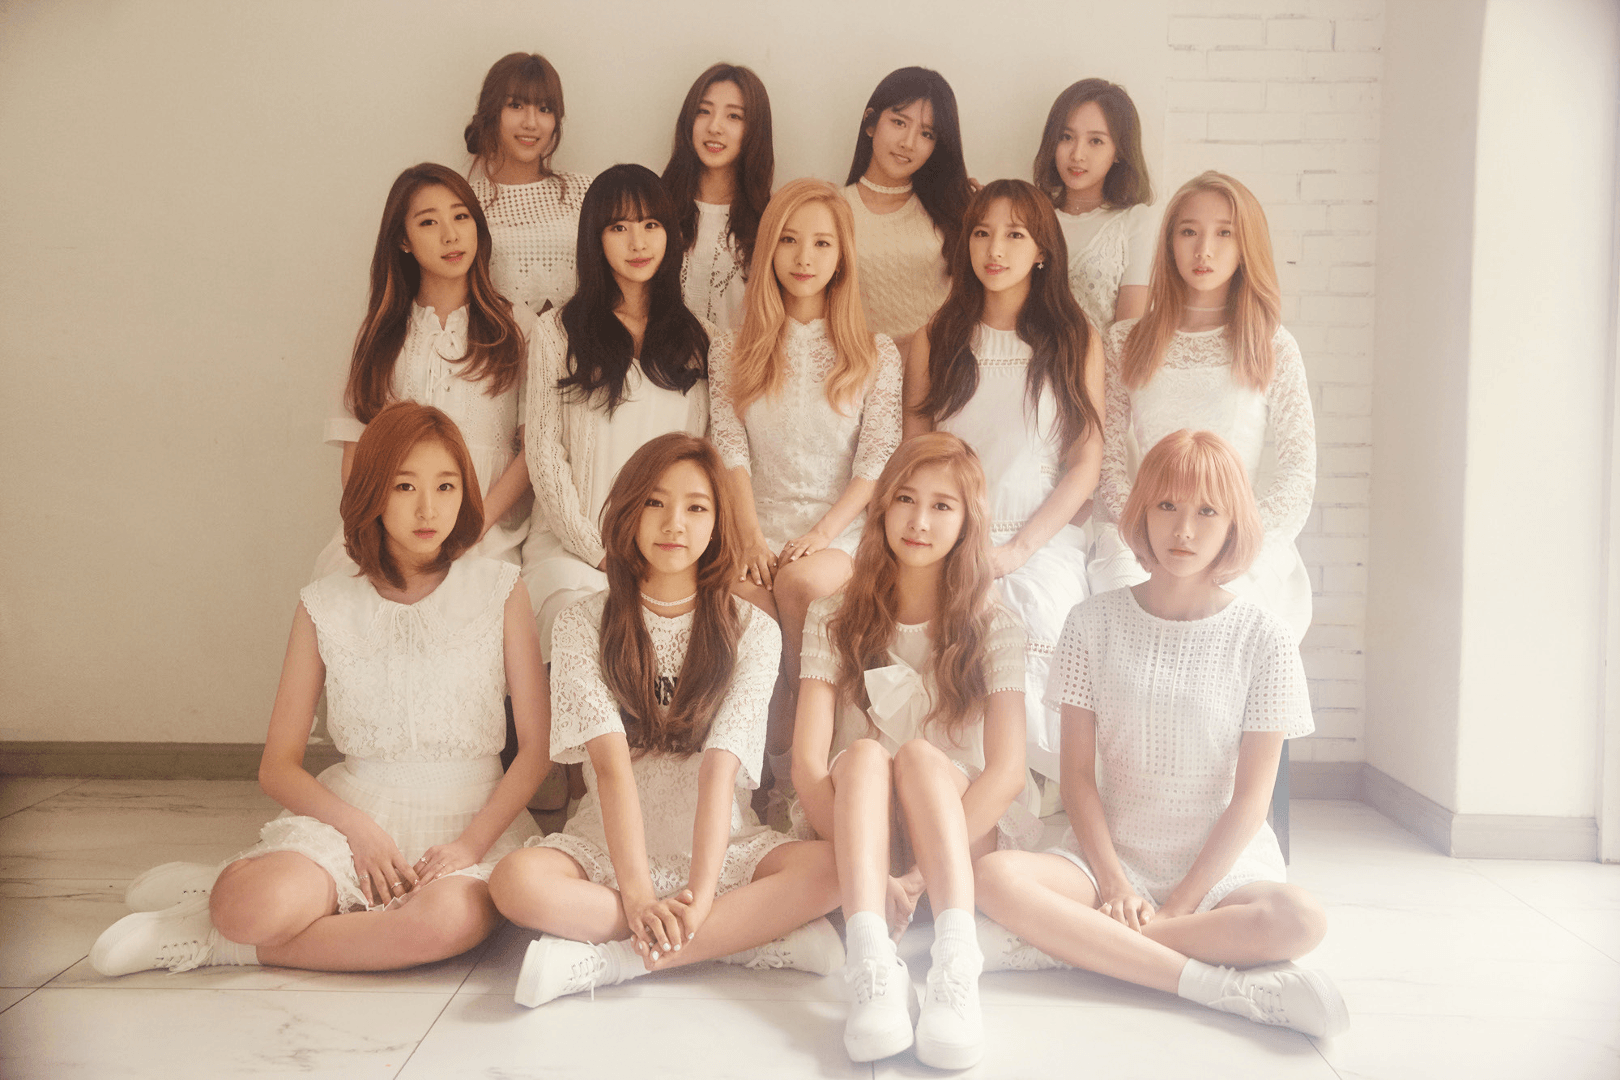 wjsn_the_secret_group_photo